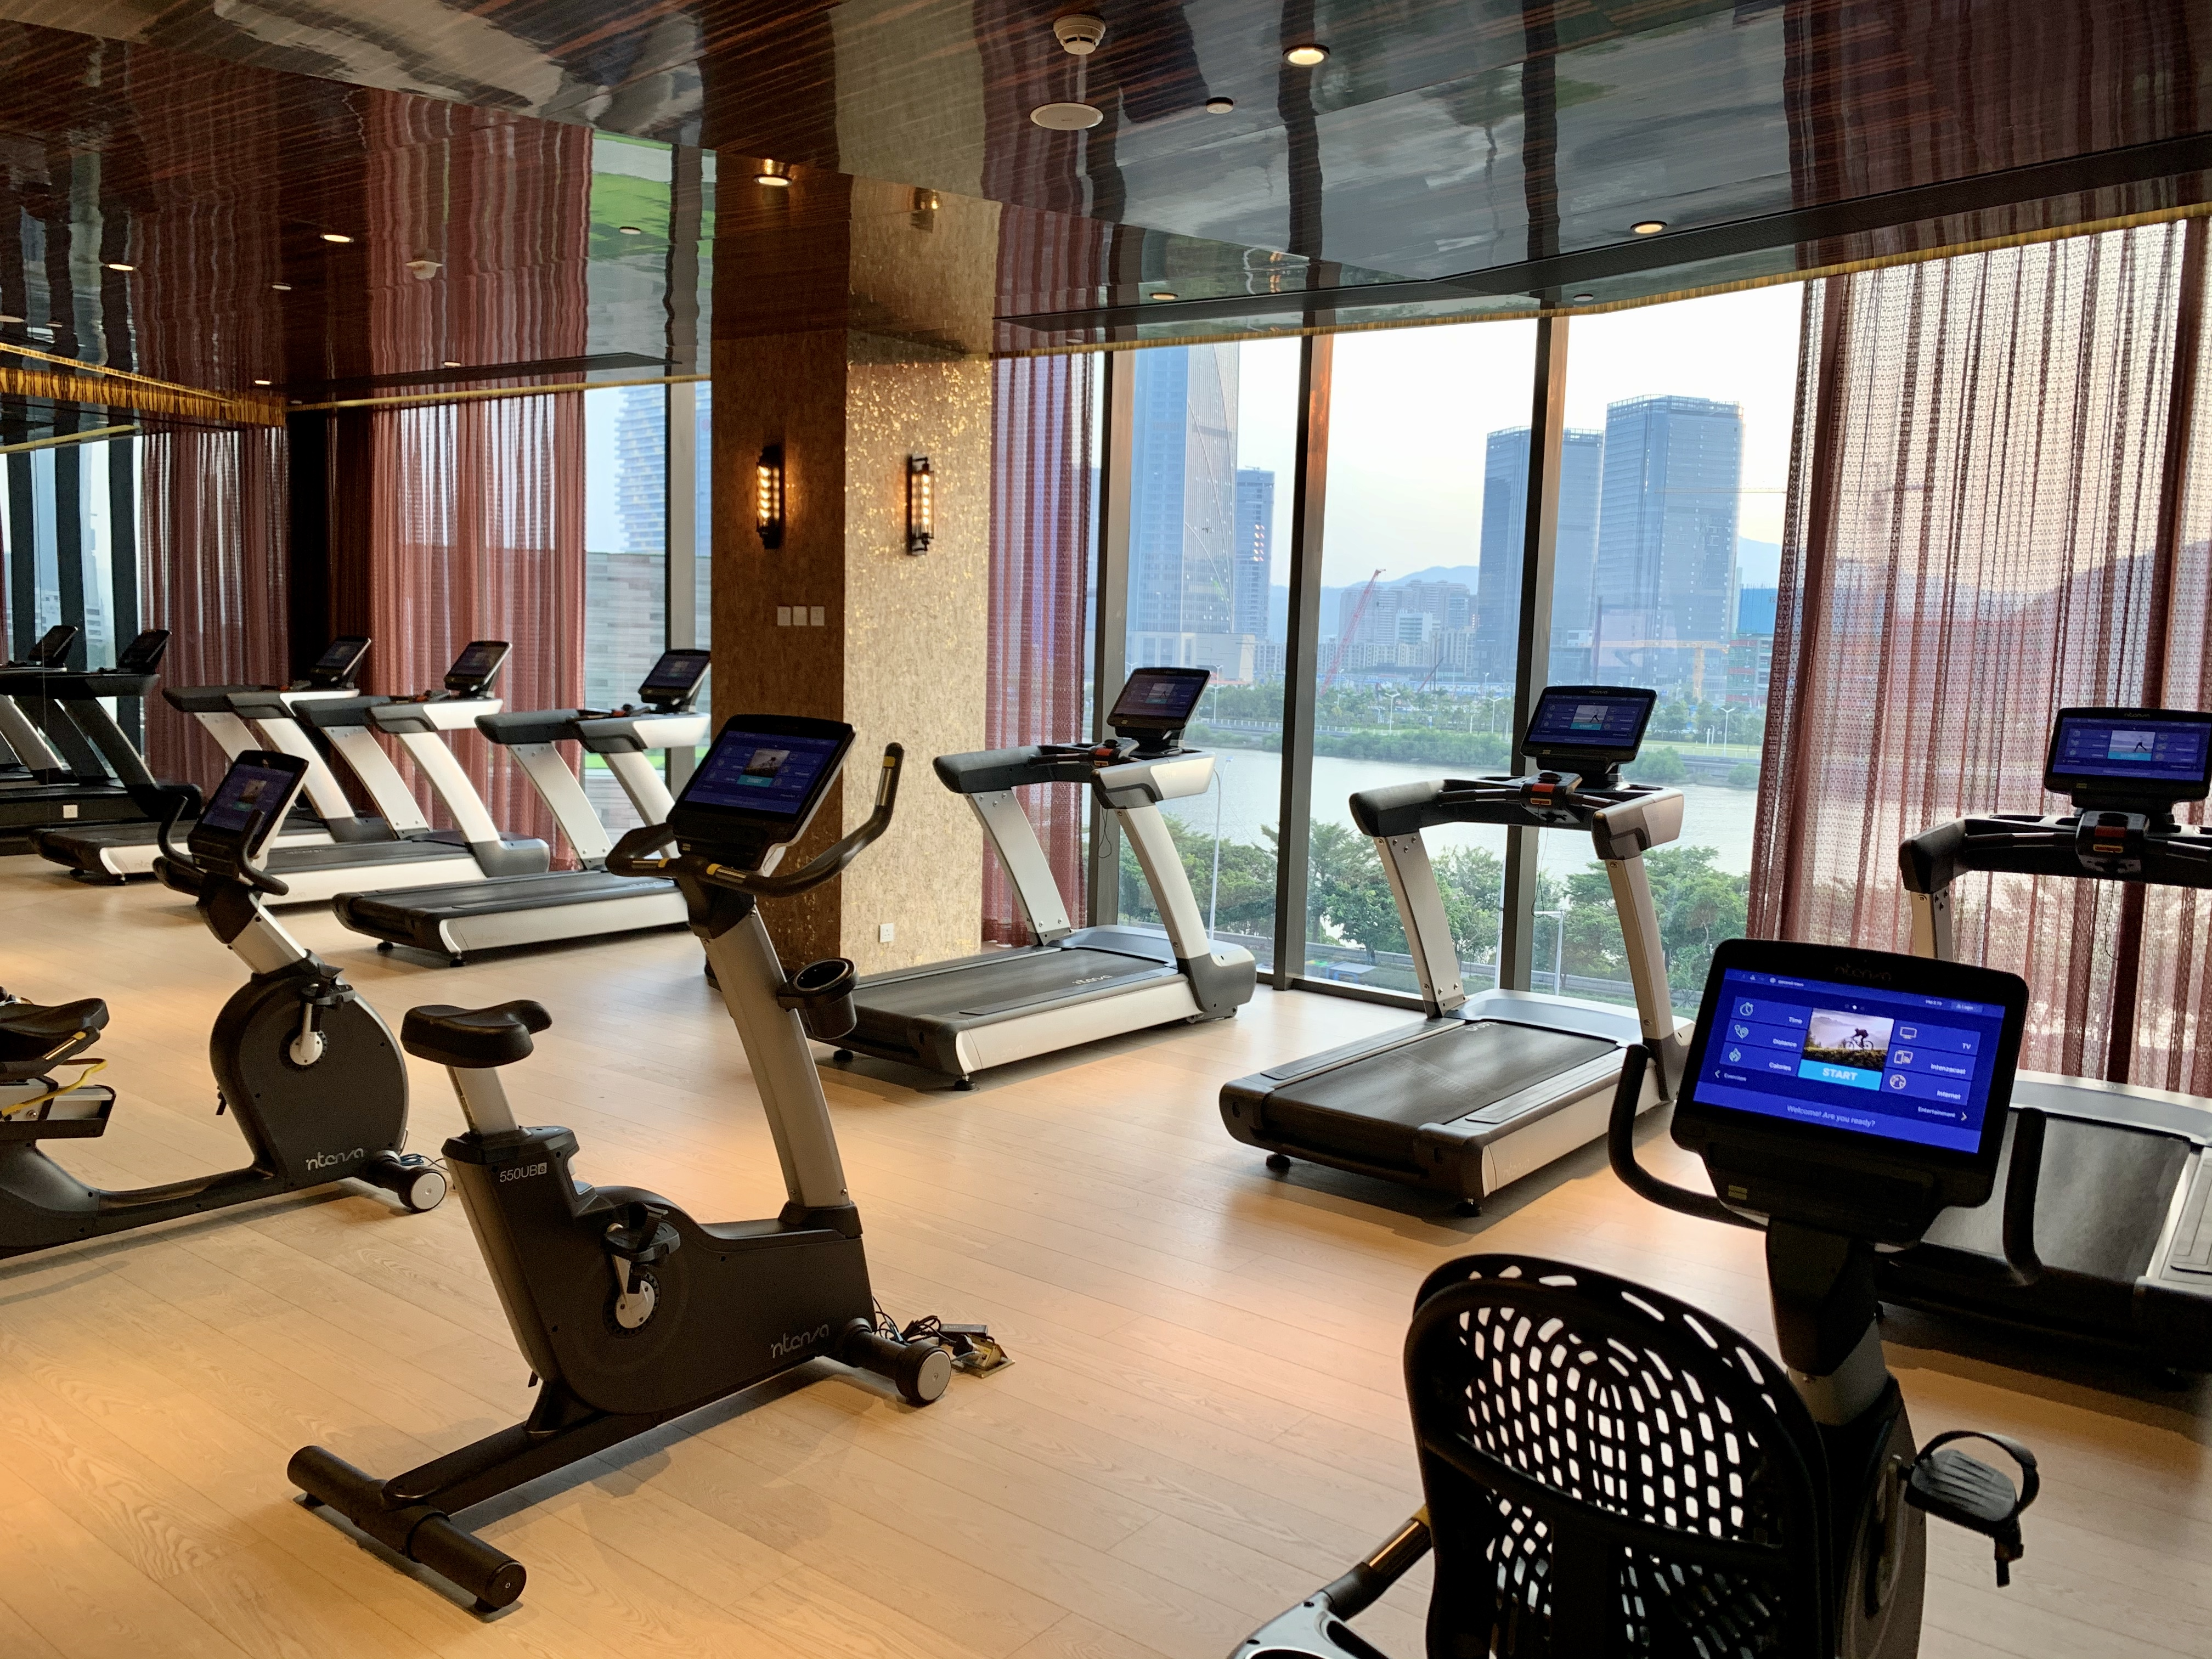 The Macau Roosevelt Hotel Gym Photo Indoor